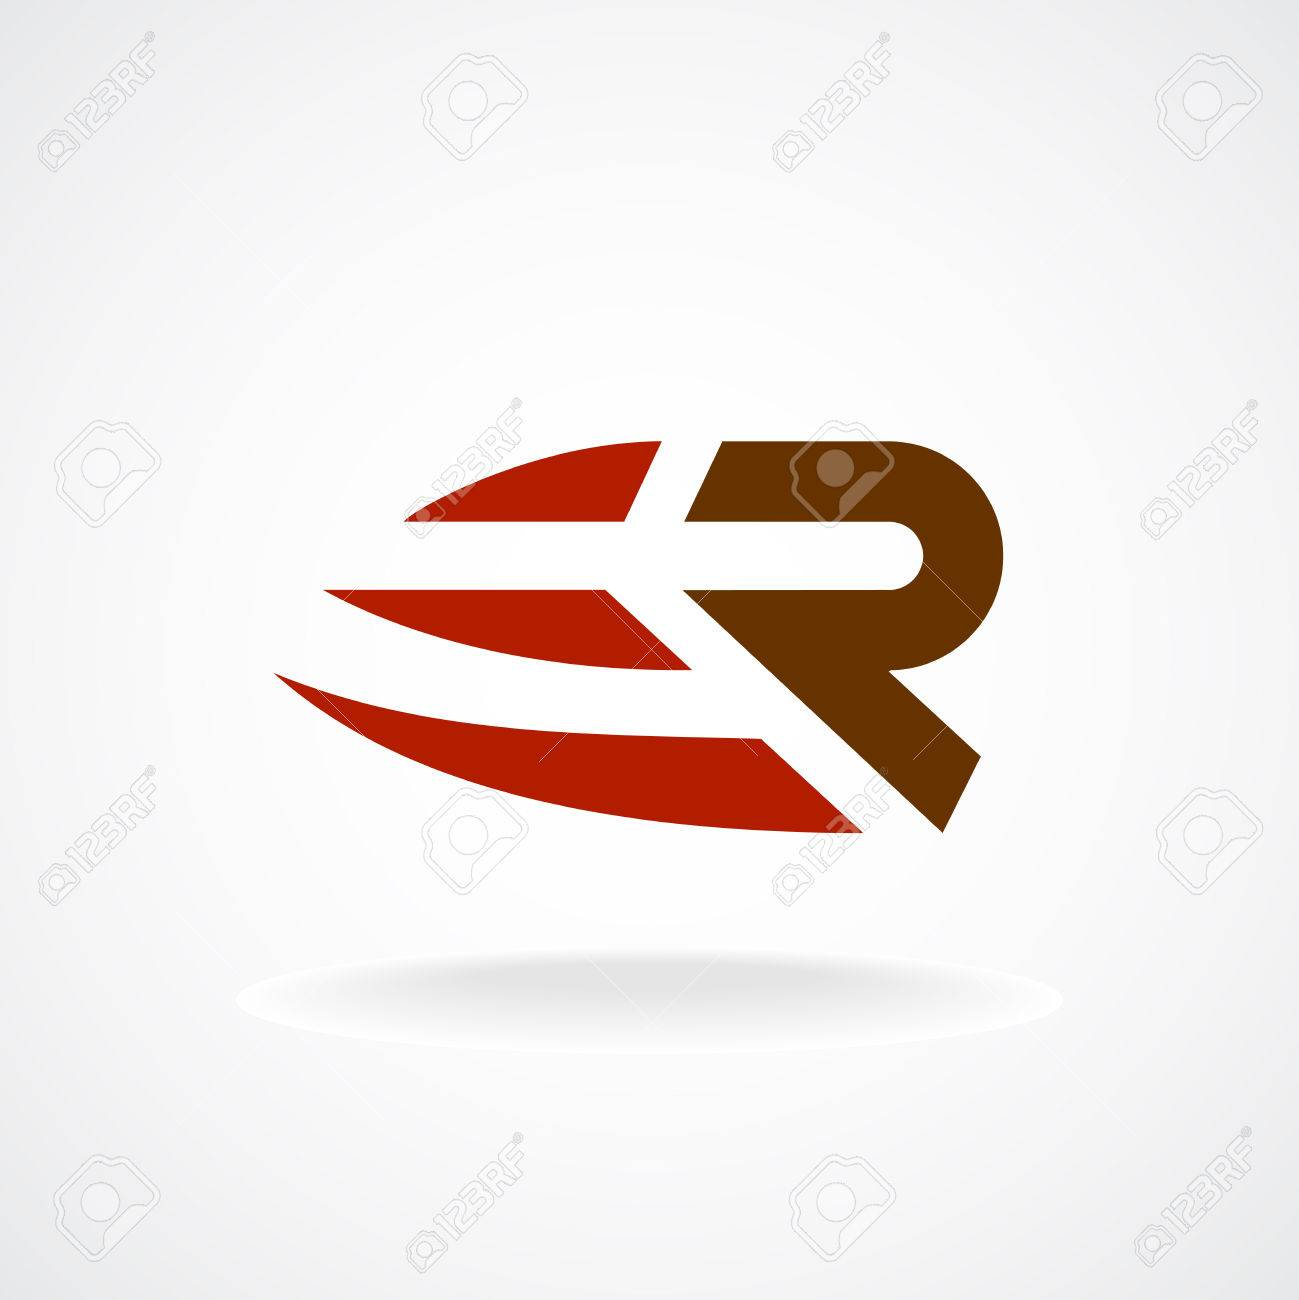 R letter logo template fast speed symbol rapid move royalty free r letter logo template fast speed symbol rapid move stock vector 41638102 altavistaventures Image collections